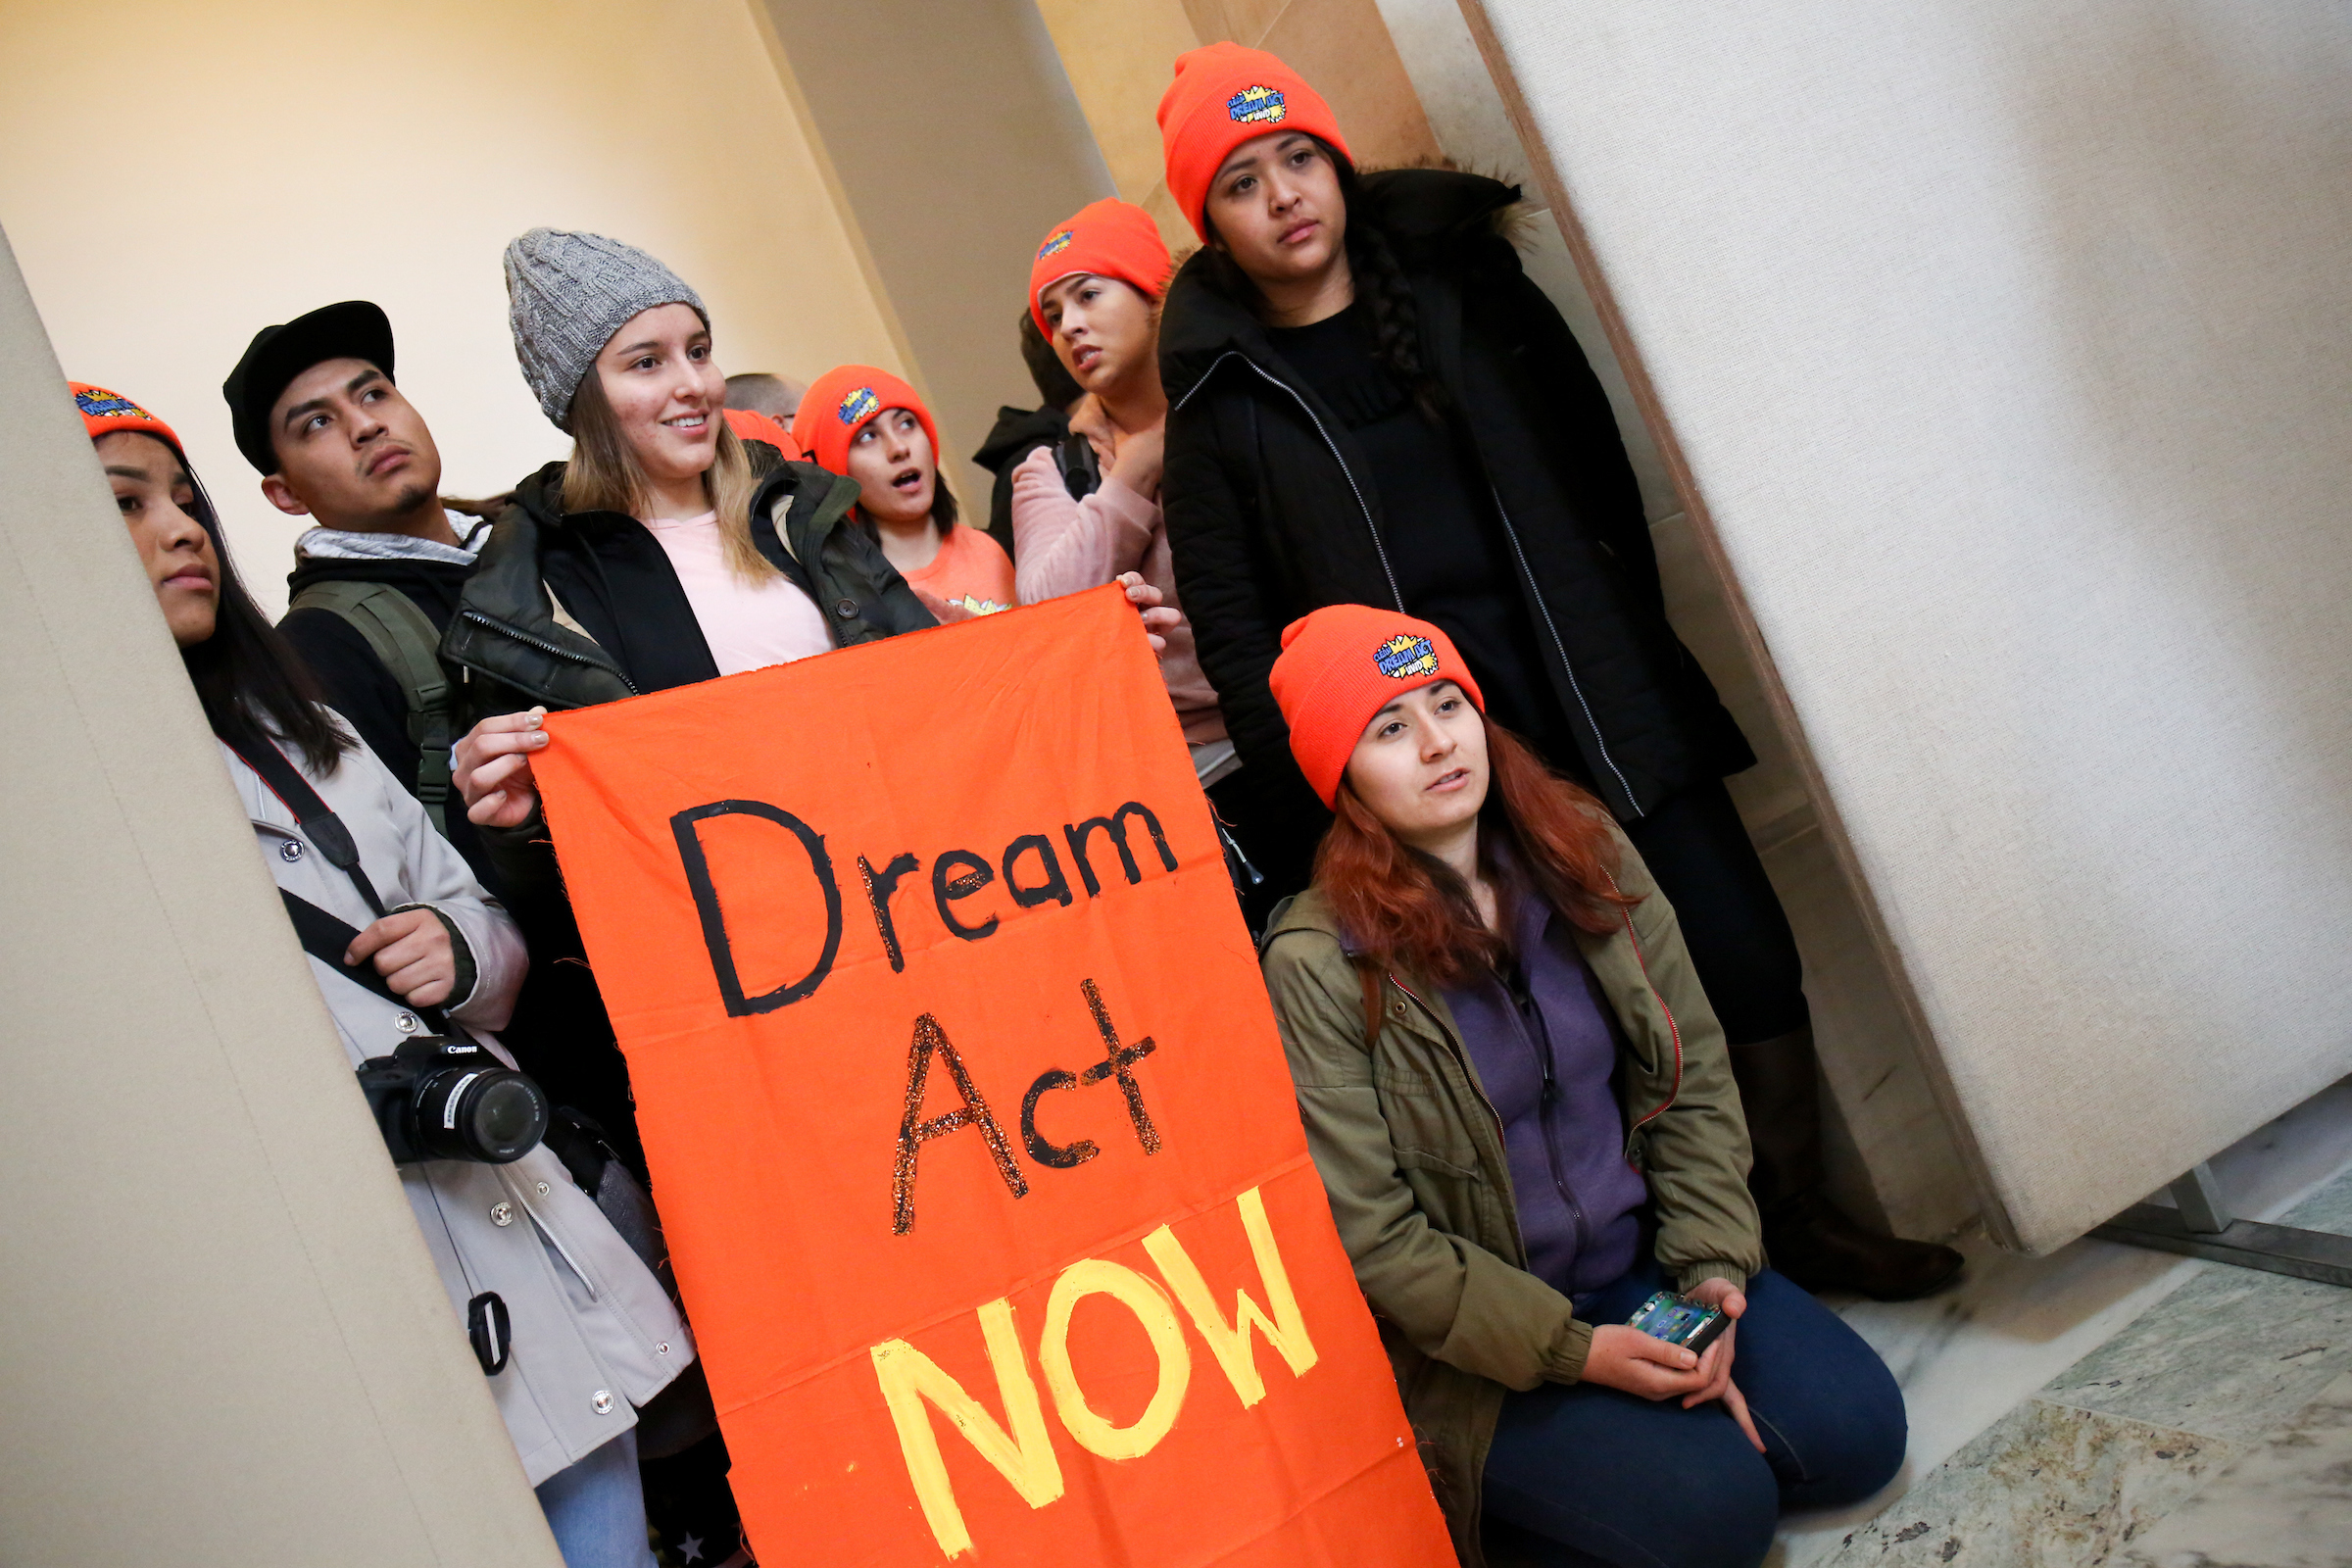 Dreamers holding sign that says DREAM ACT NOW